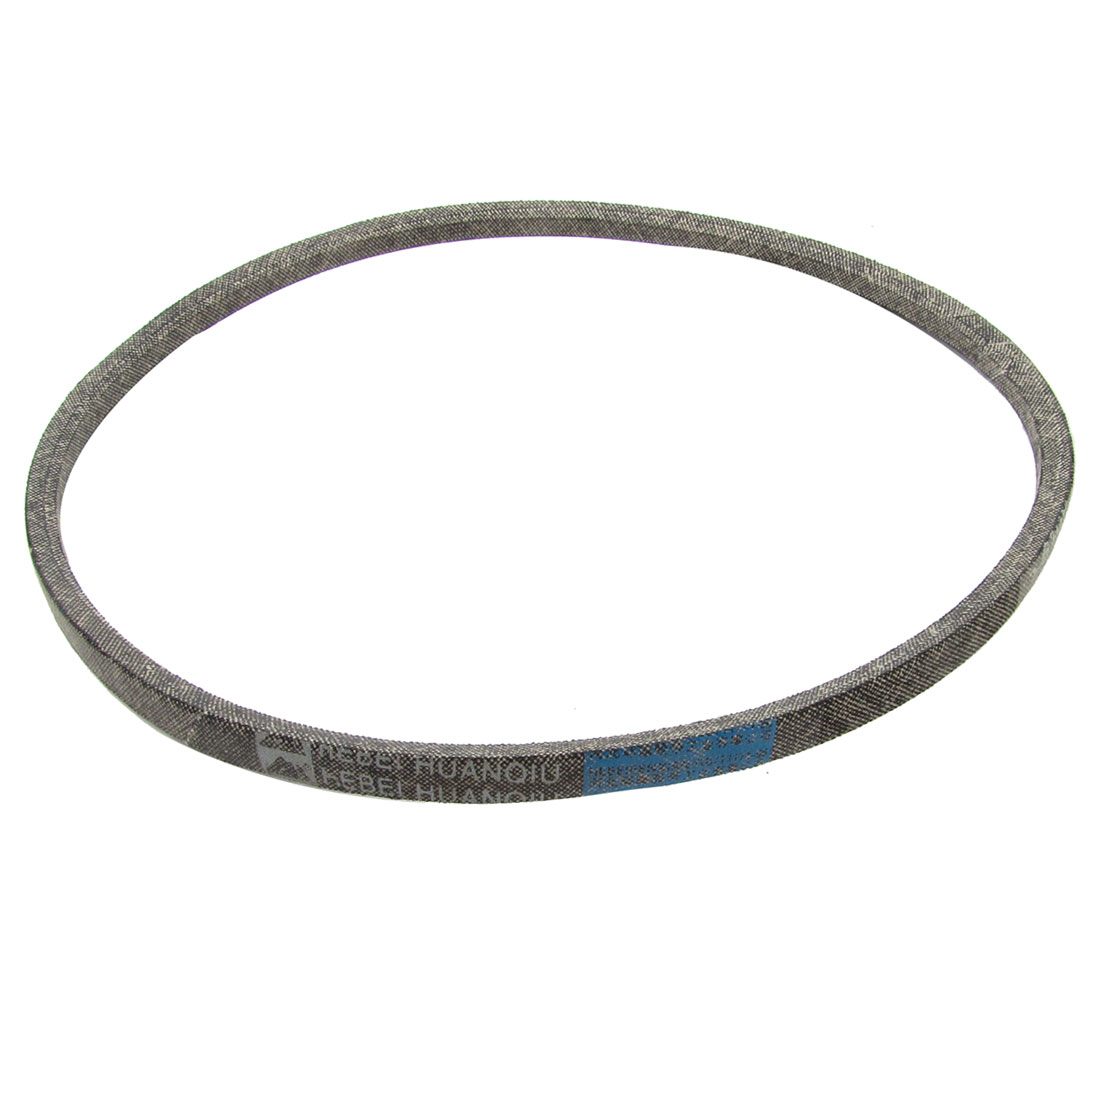 "Washing Machine Drive Belt Repair Part O-610E 61cm 24 1/64"" Inner Girth"